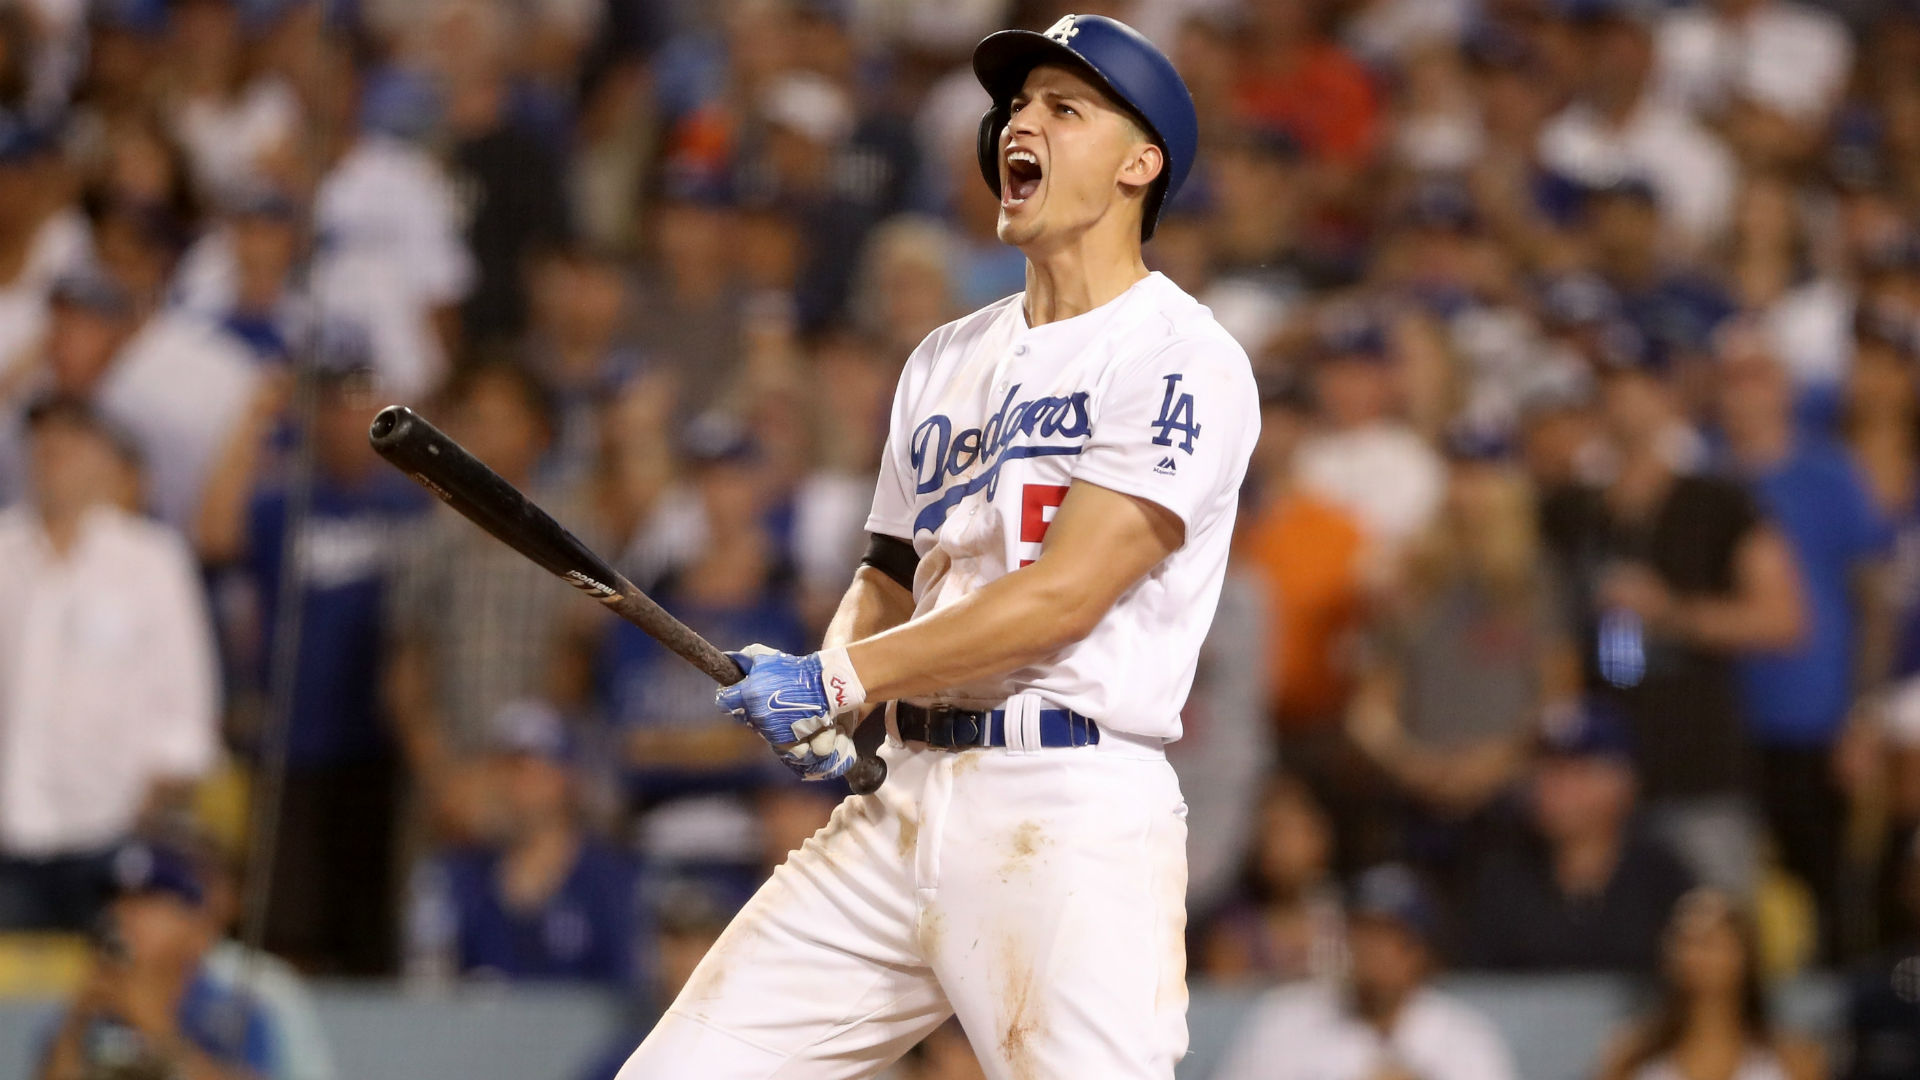 Corey Seager injury update: Dodgers SS (Tommy John surgery) progress encourages team